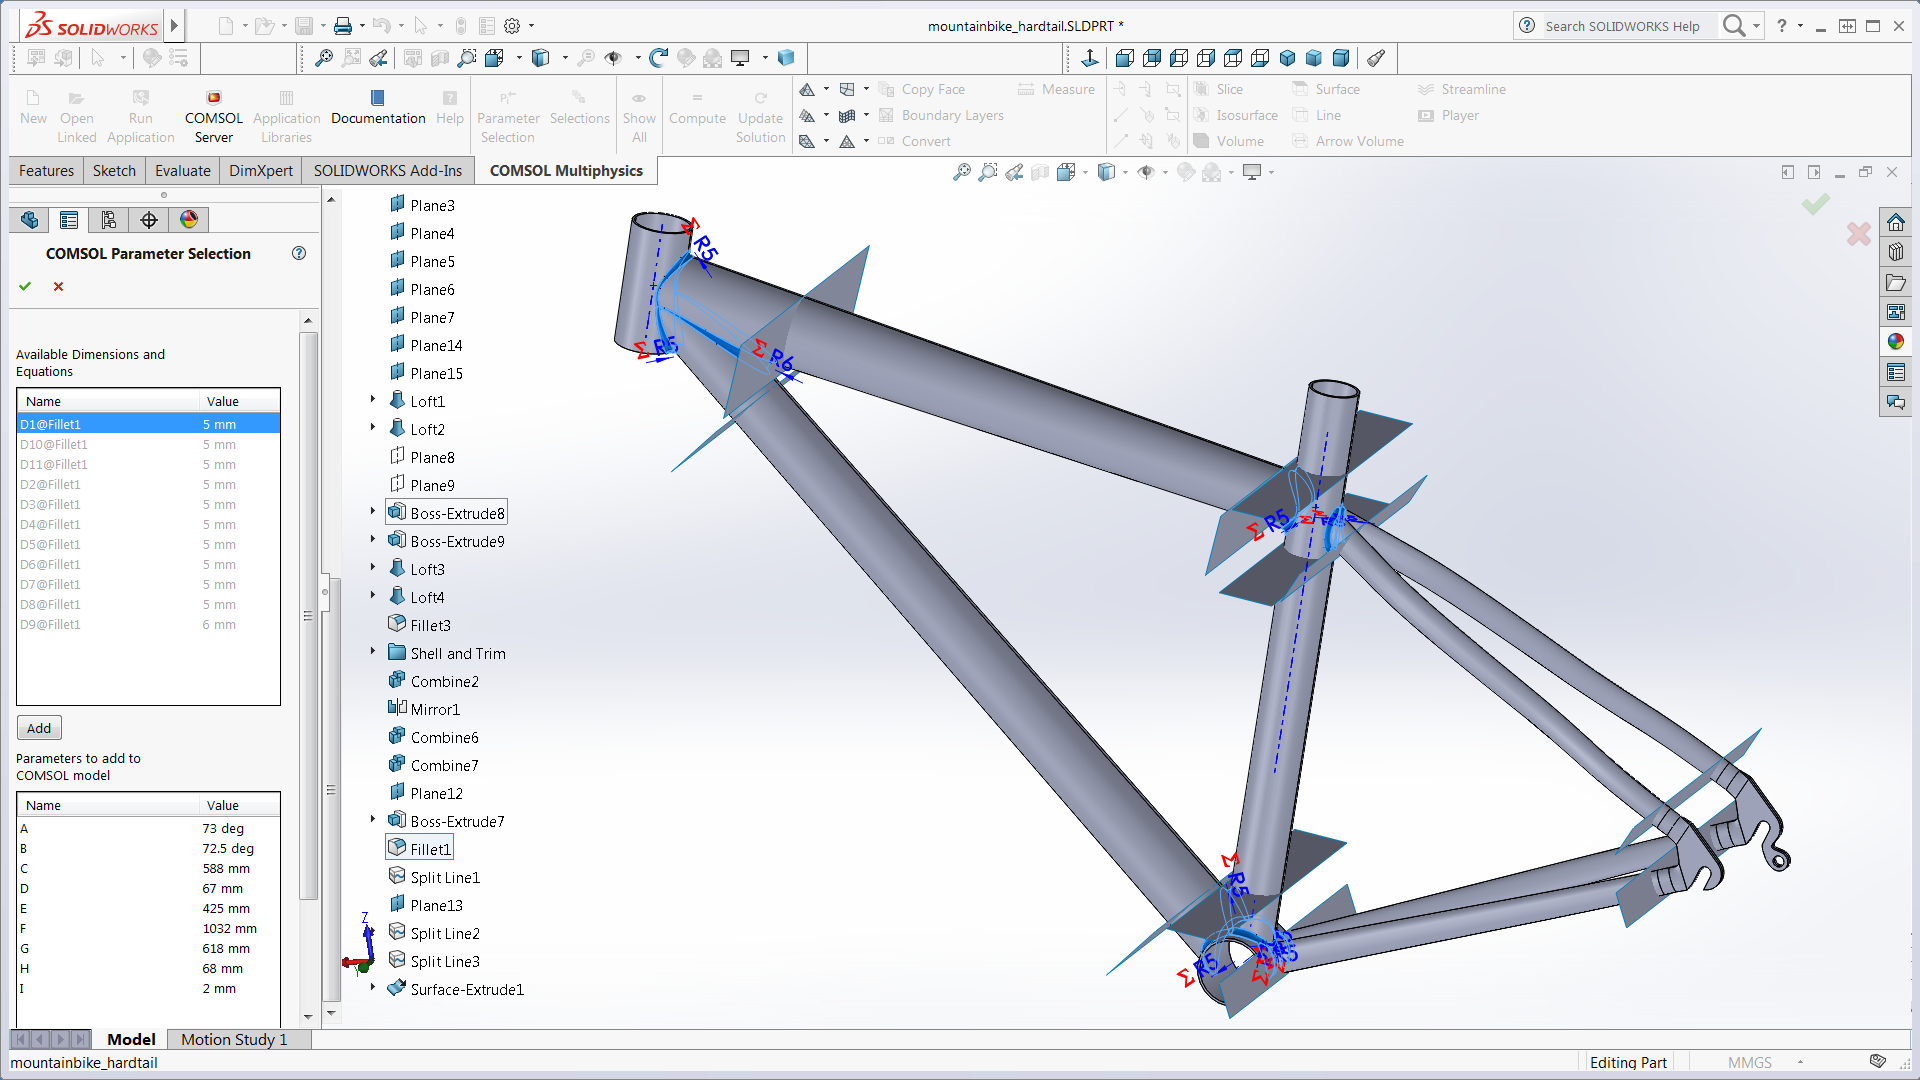 Comsol Multiphysics Software Understand Predict And Optimize Series Circuit 3d Animated Model Parallel The Cad Design Of A Bike Frame In Solidworks